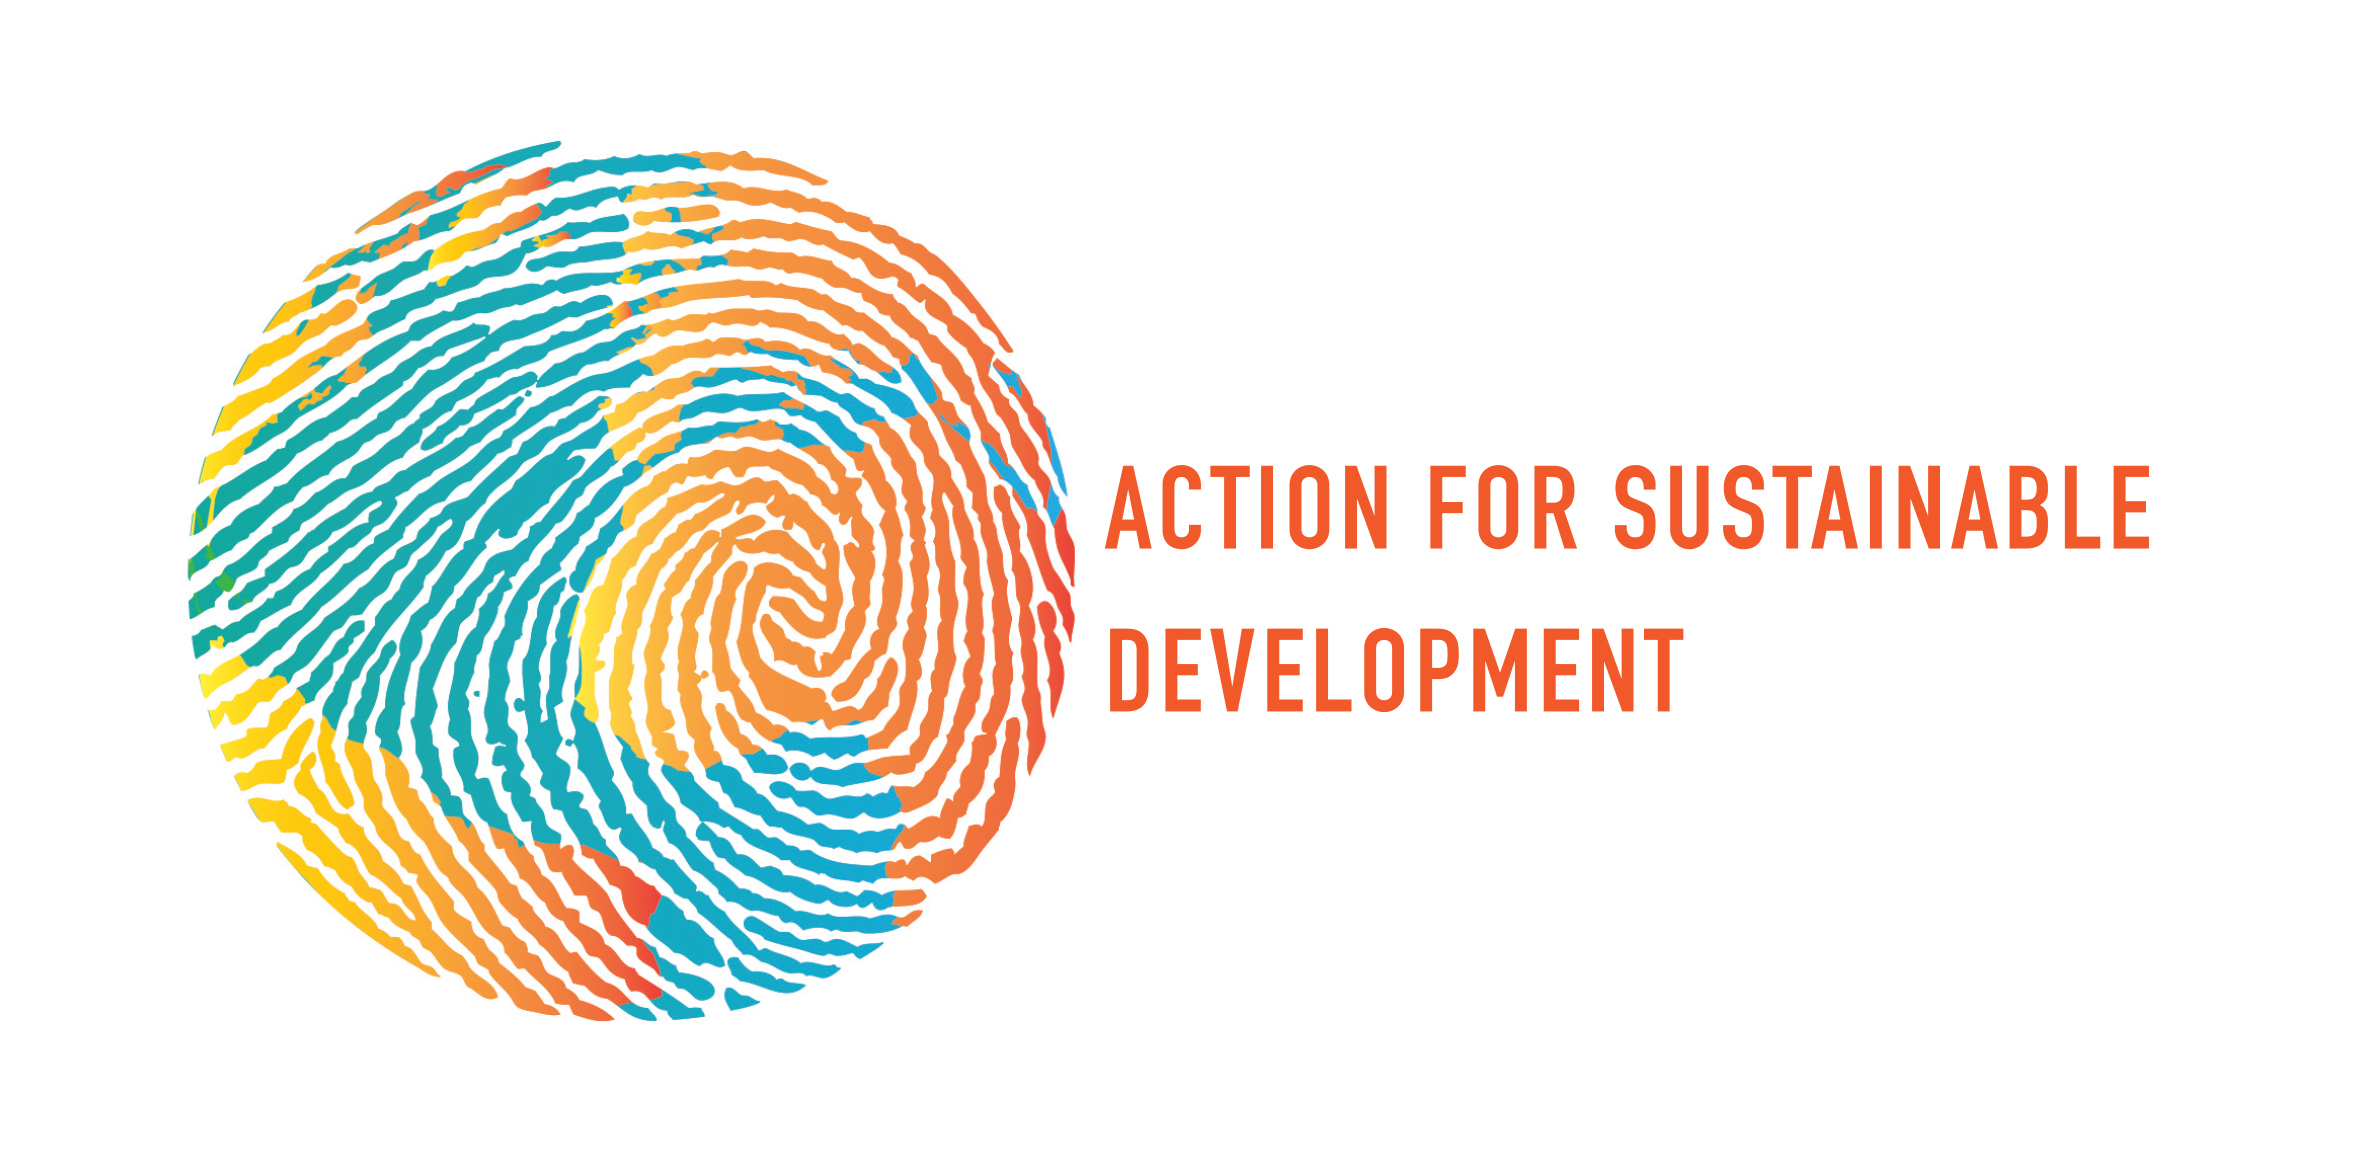 Action for Sustainable Development